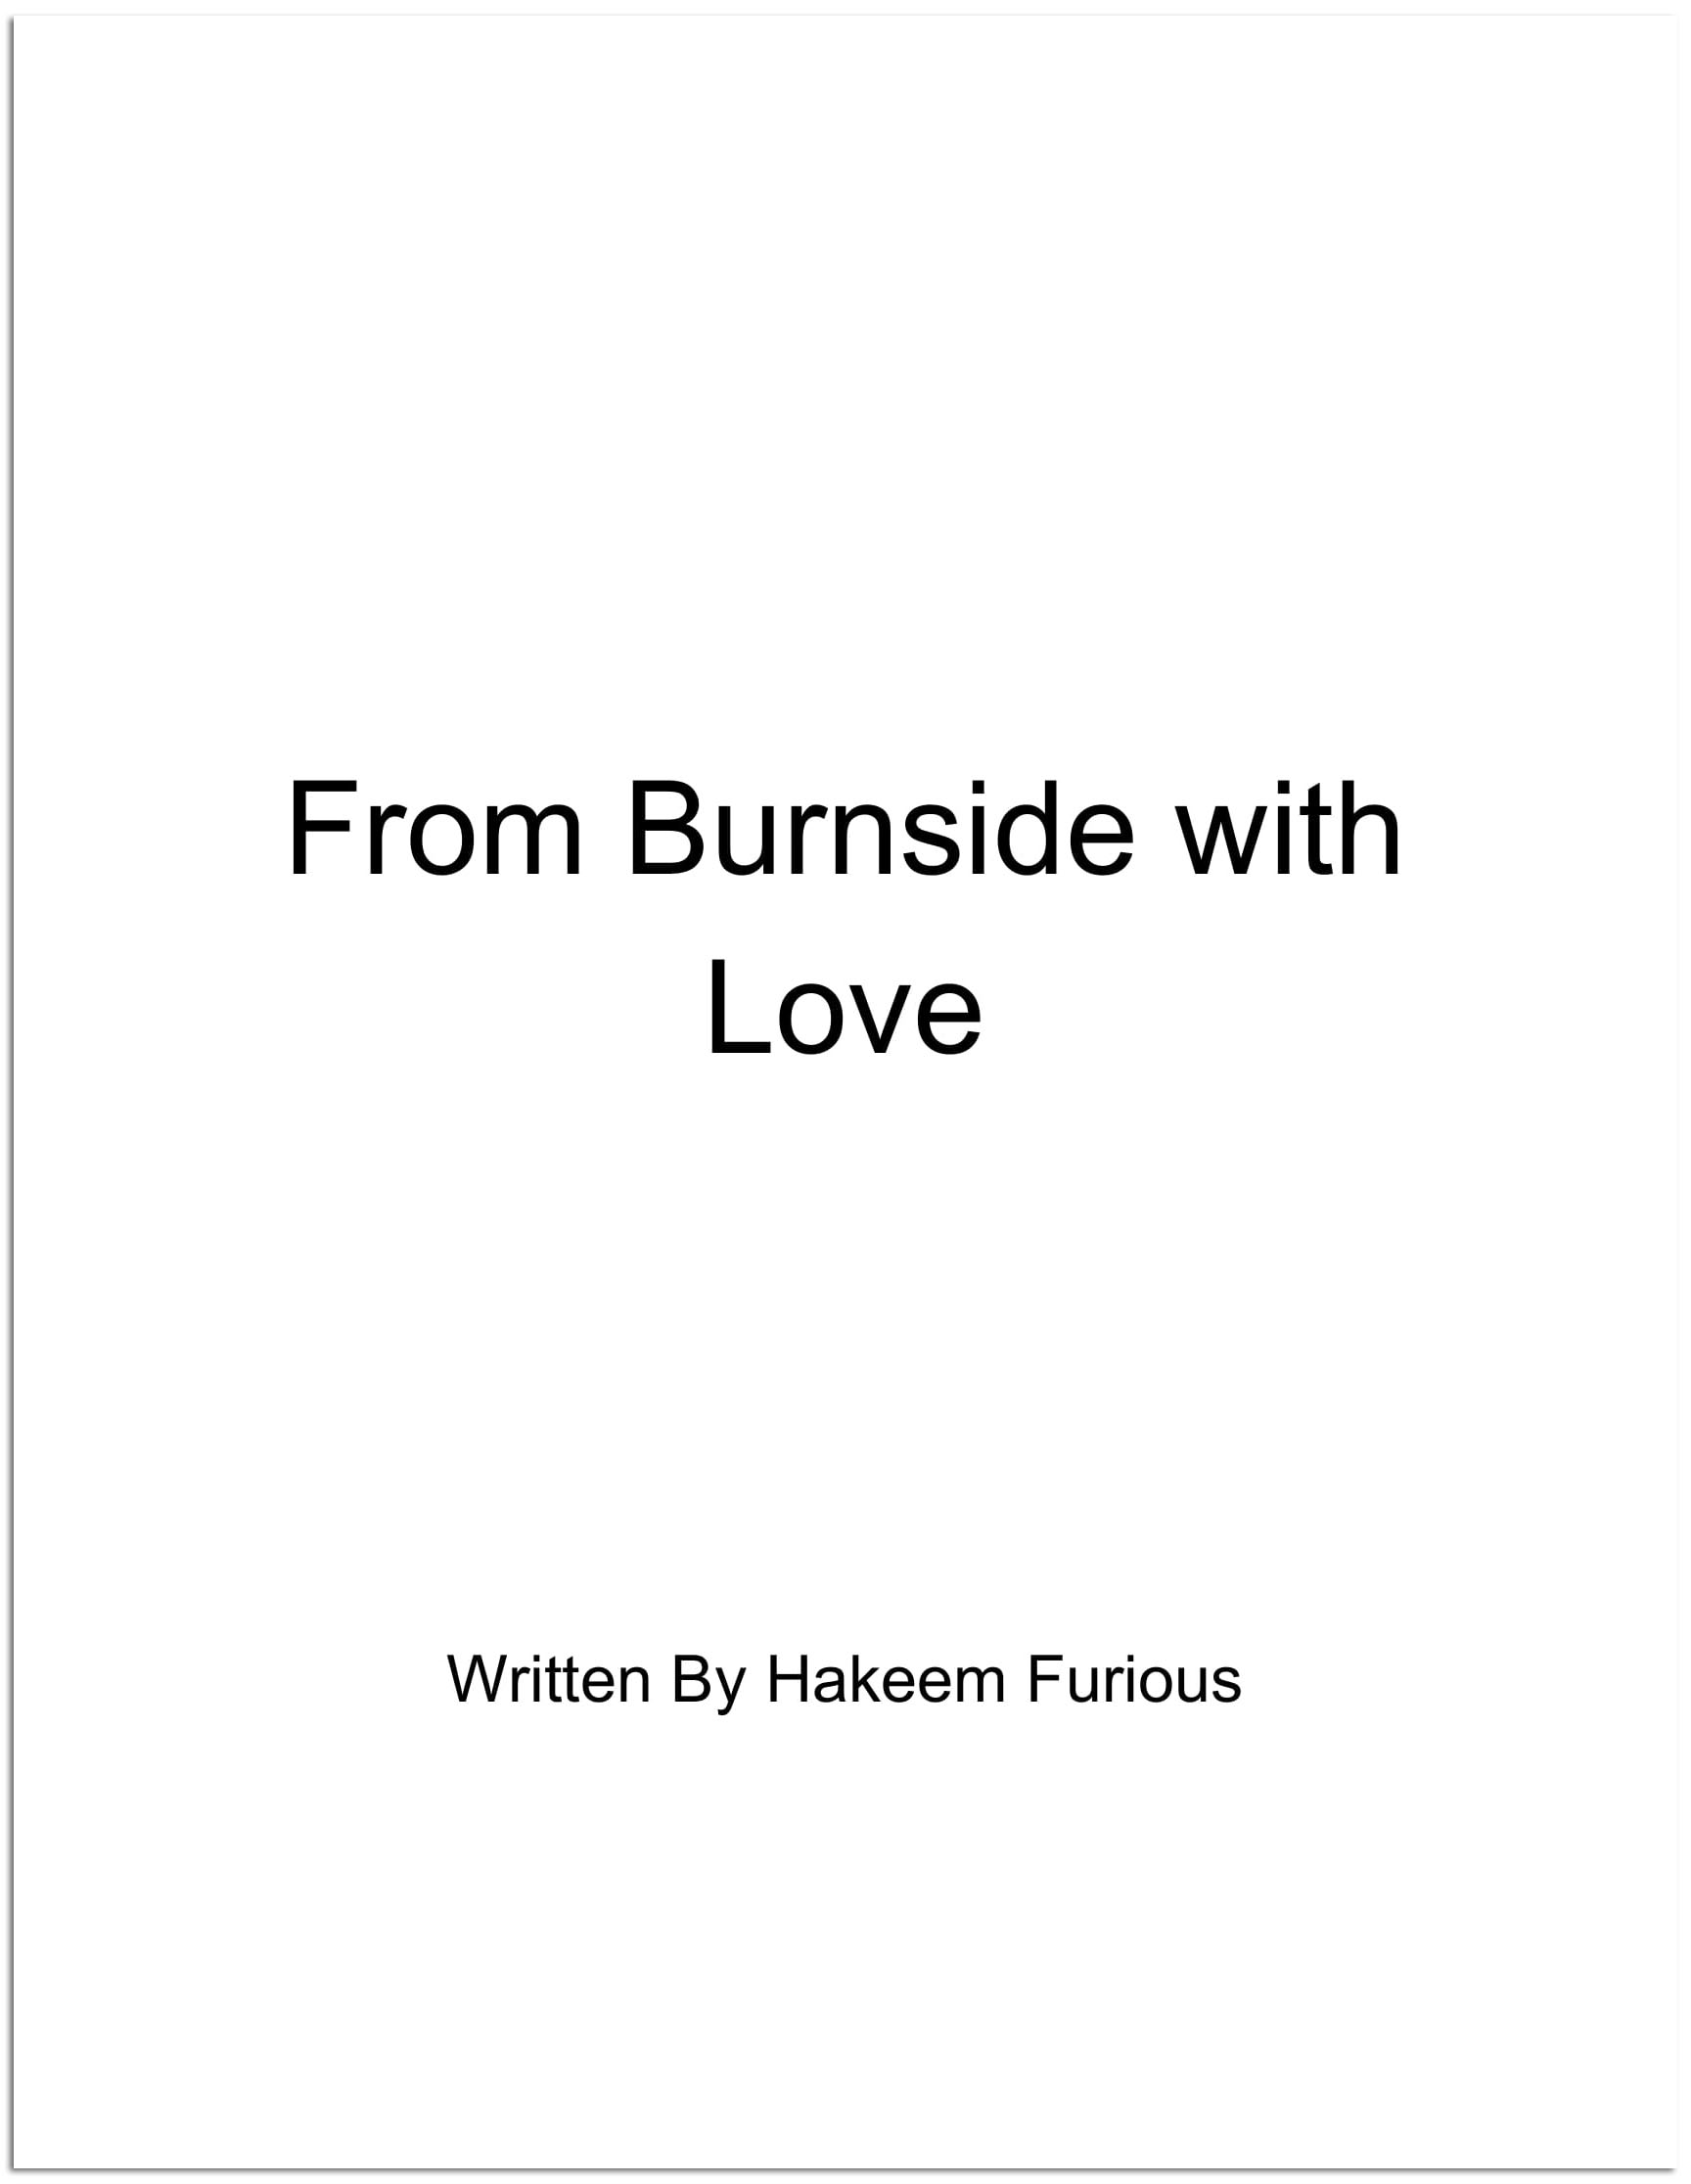 From Burnside with Love (2nd Draft)(1)-01.jpg